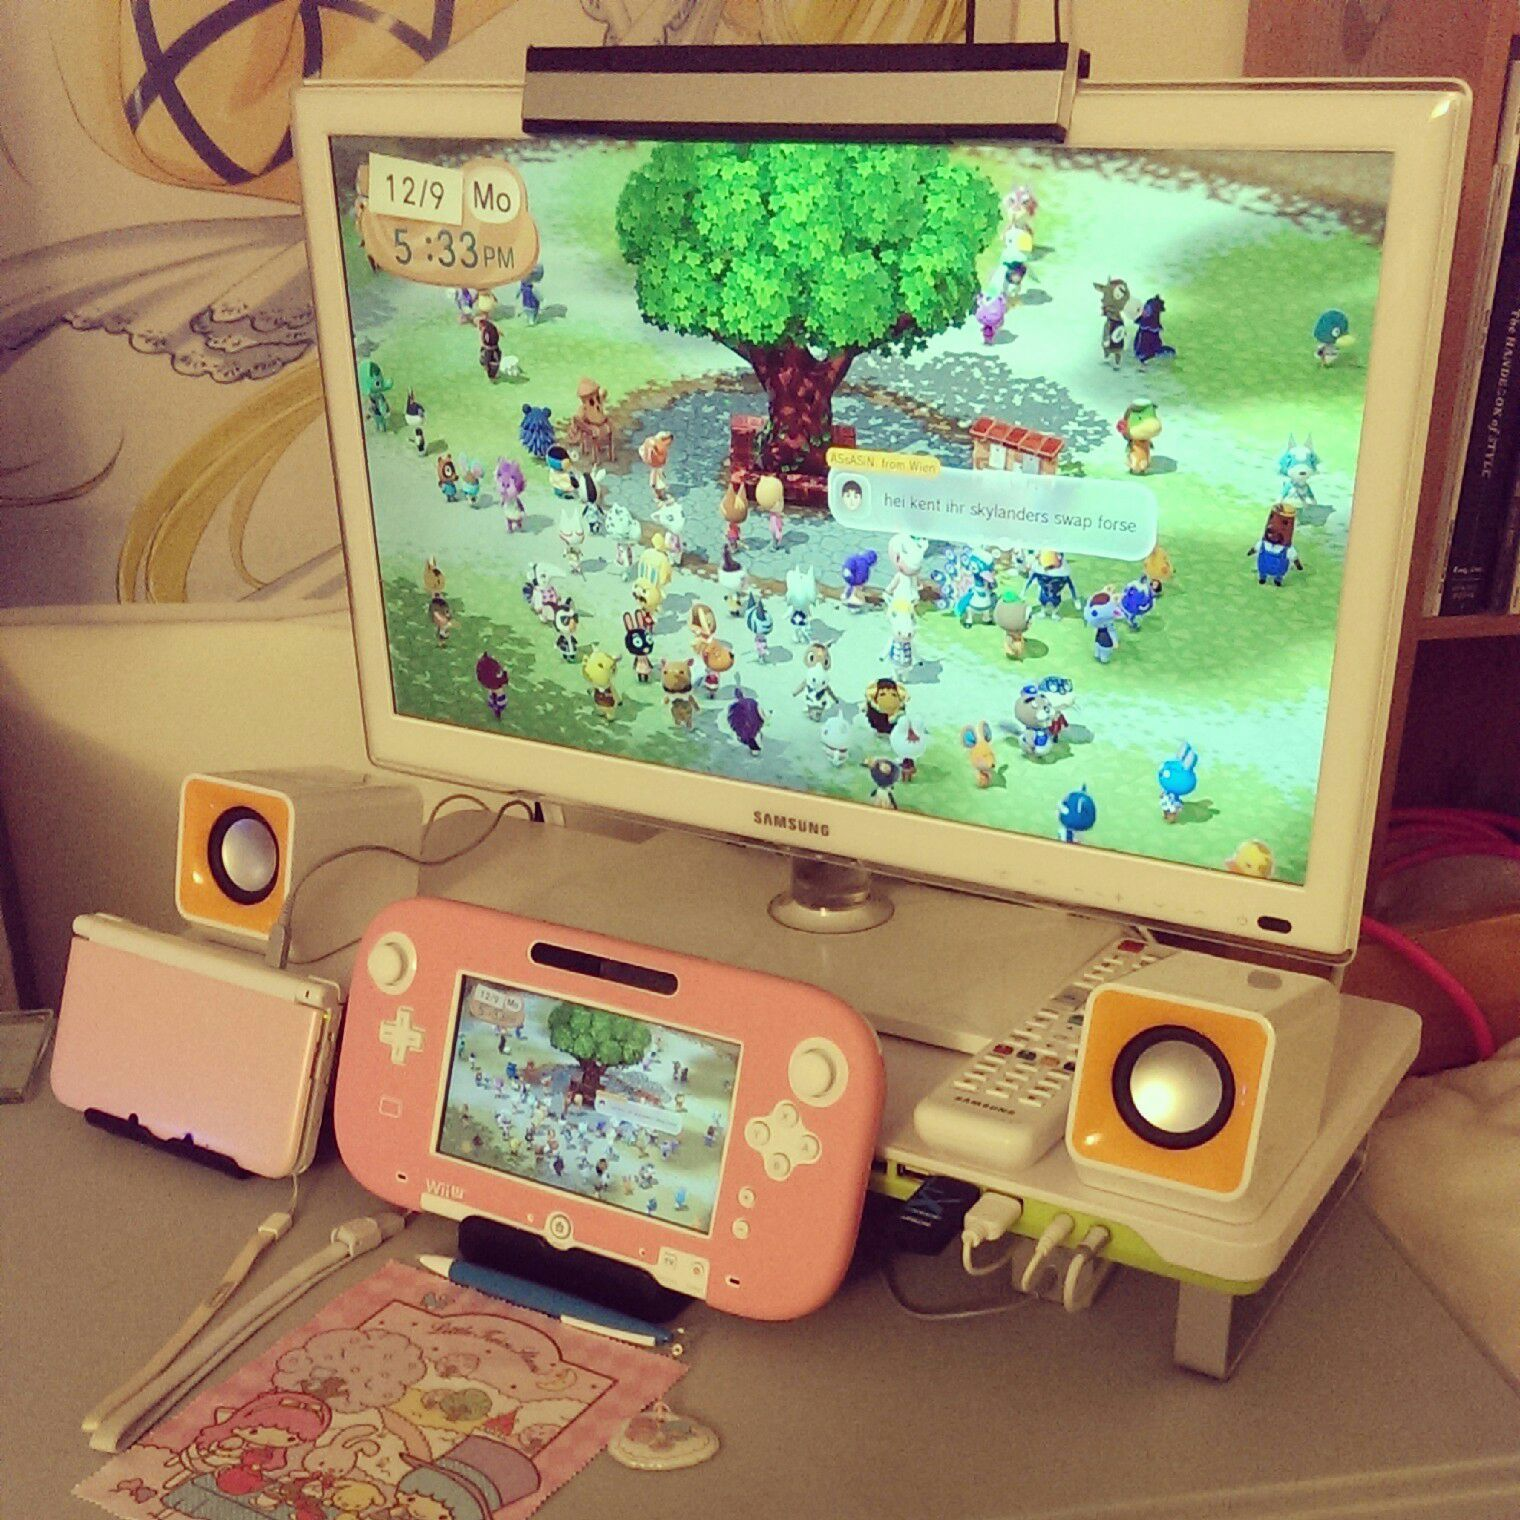 Pin By Ian Abney On Gaming Kawaii Games Game Room Design Gamer Room